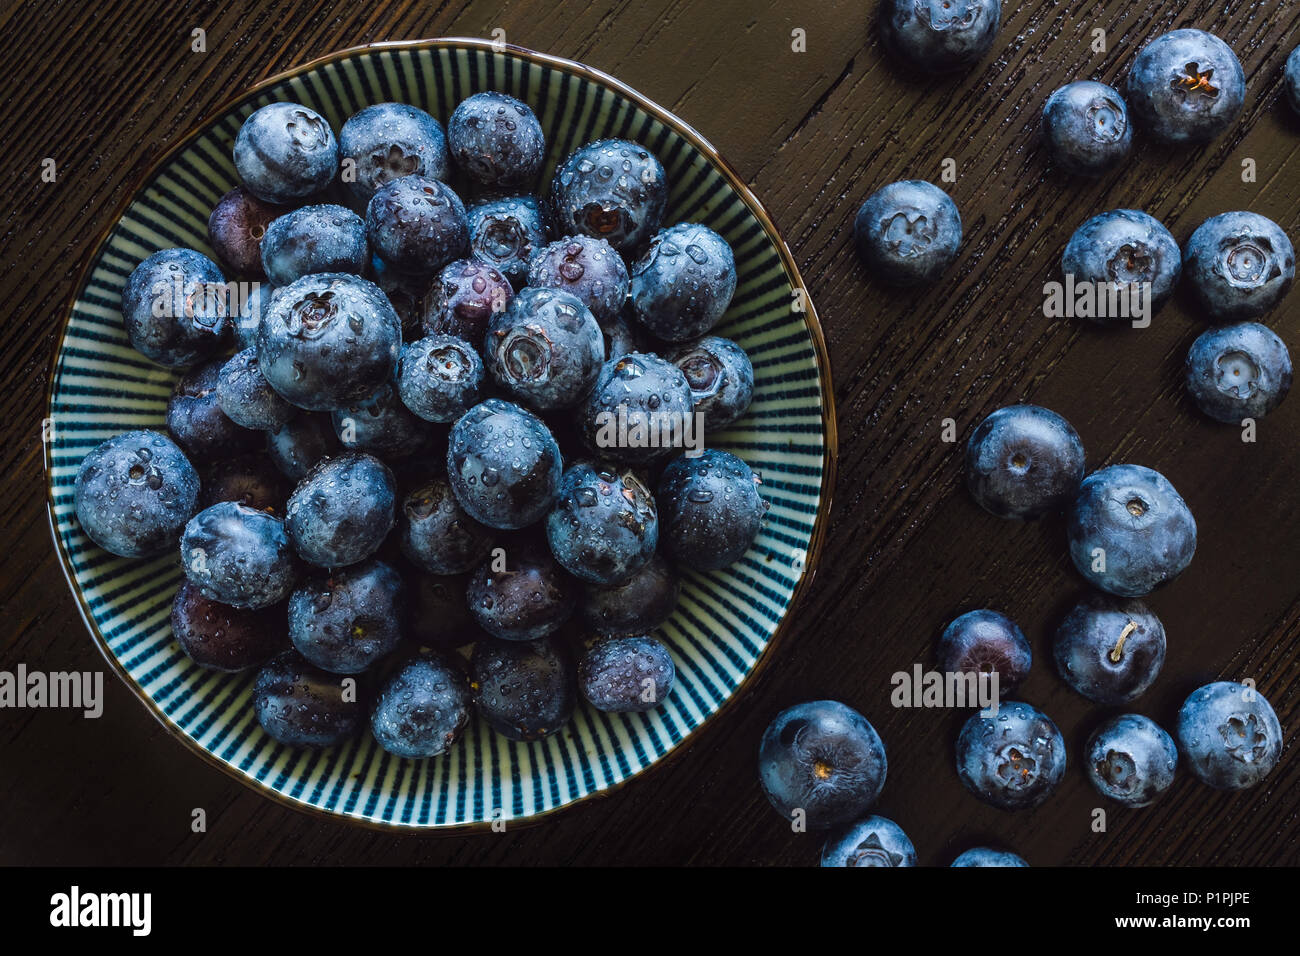 Bowl of Fresh Blueberries Arranged on Wood Table - Stock Image